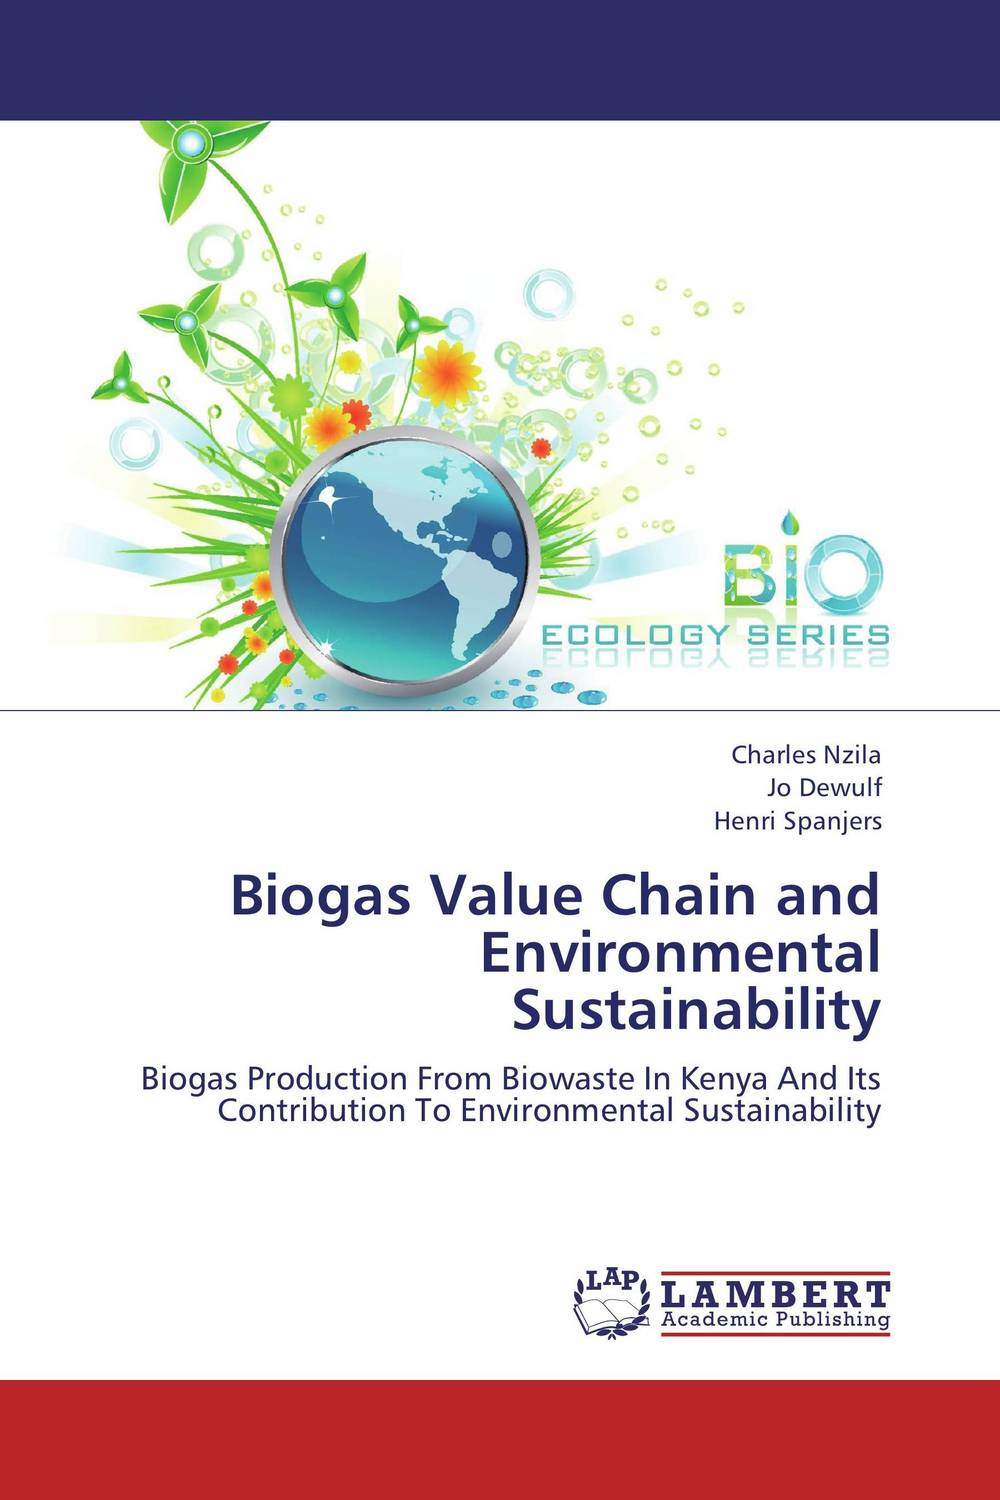 Biogas Value Chain and Environmental Sustainability eric lowitt the future of value how sustainability creates value through competitive differentiation